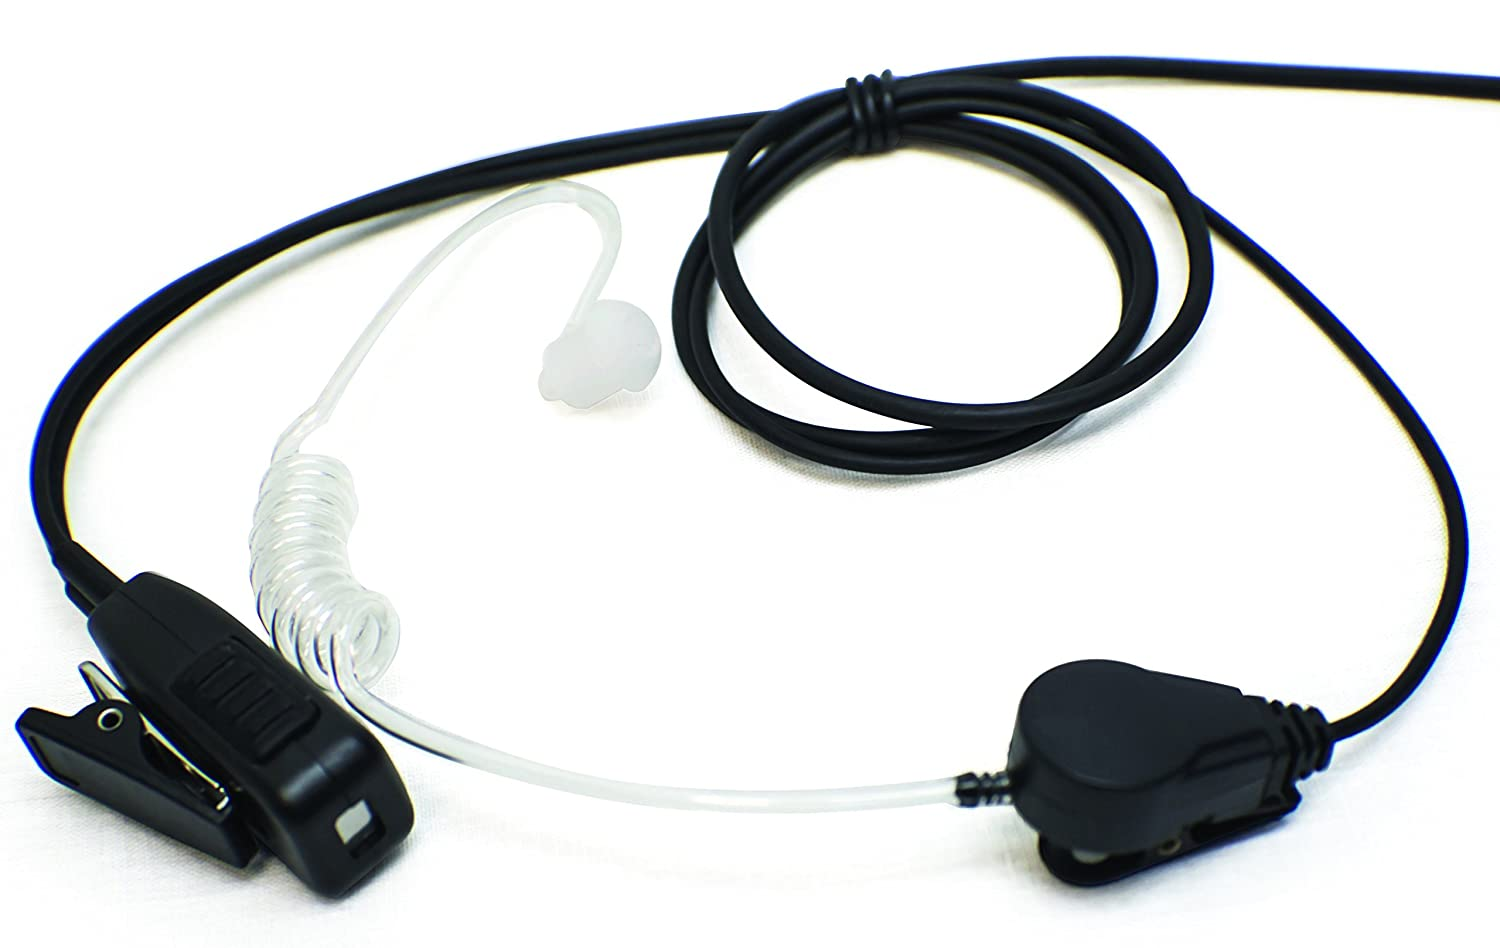 Single-Wire Surveillance Mic Kit for Motorola Mototrbo Digital Radios XPR6100 XPR6350 XPR6550 XPR7550 APX4000 APX6000 APX7000 DP3400 S49 Commercial Series Pulsat USA